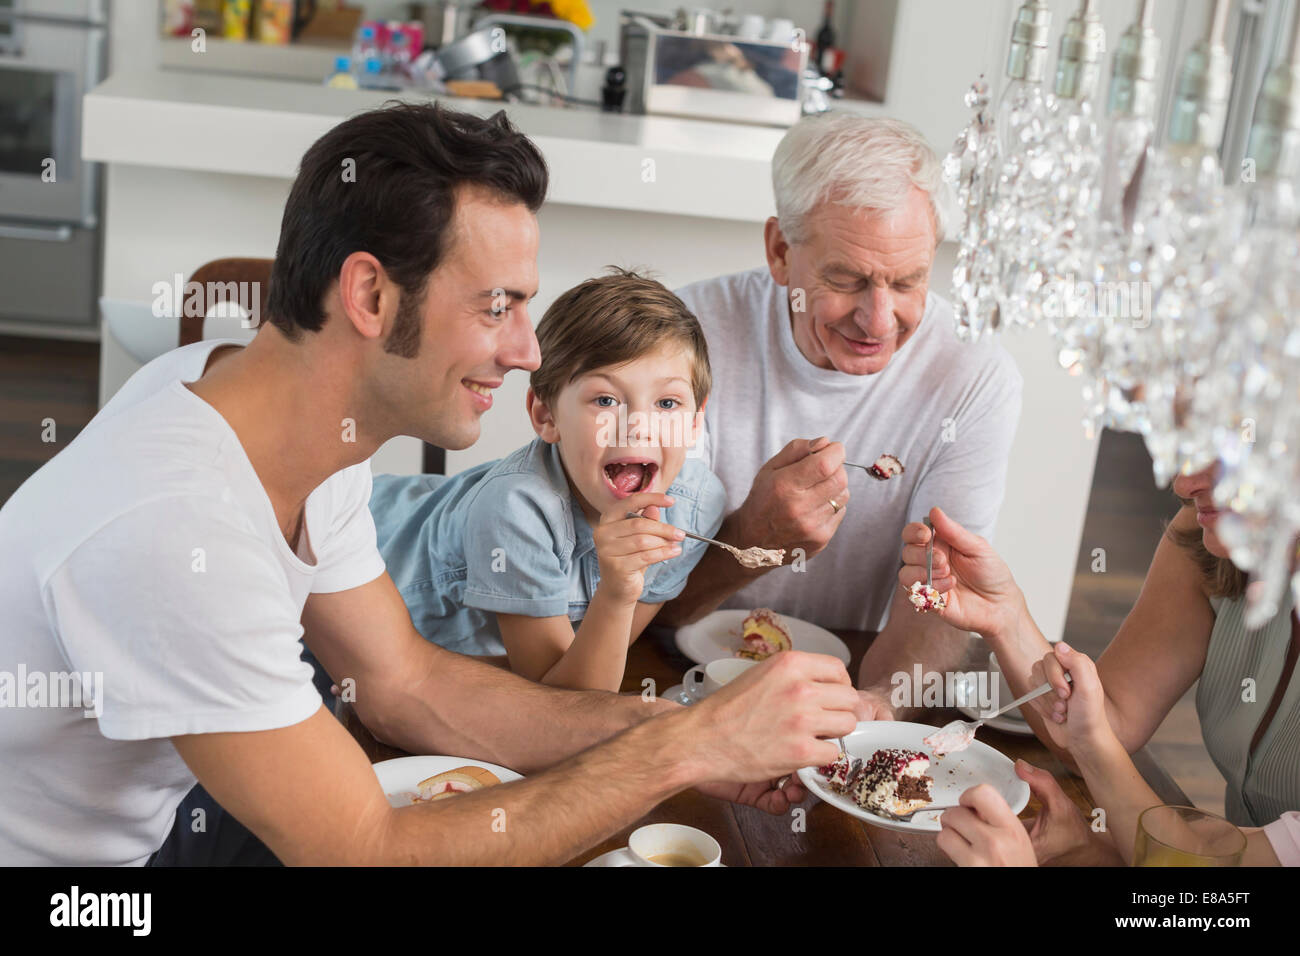 Extended family at table eating cake Stock Photo